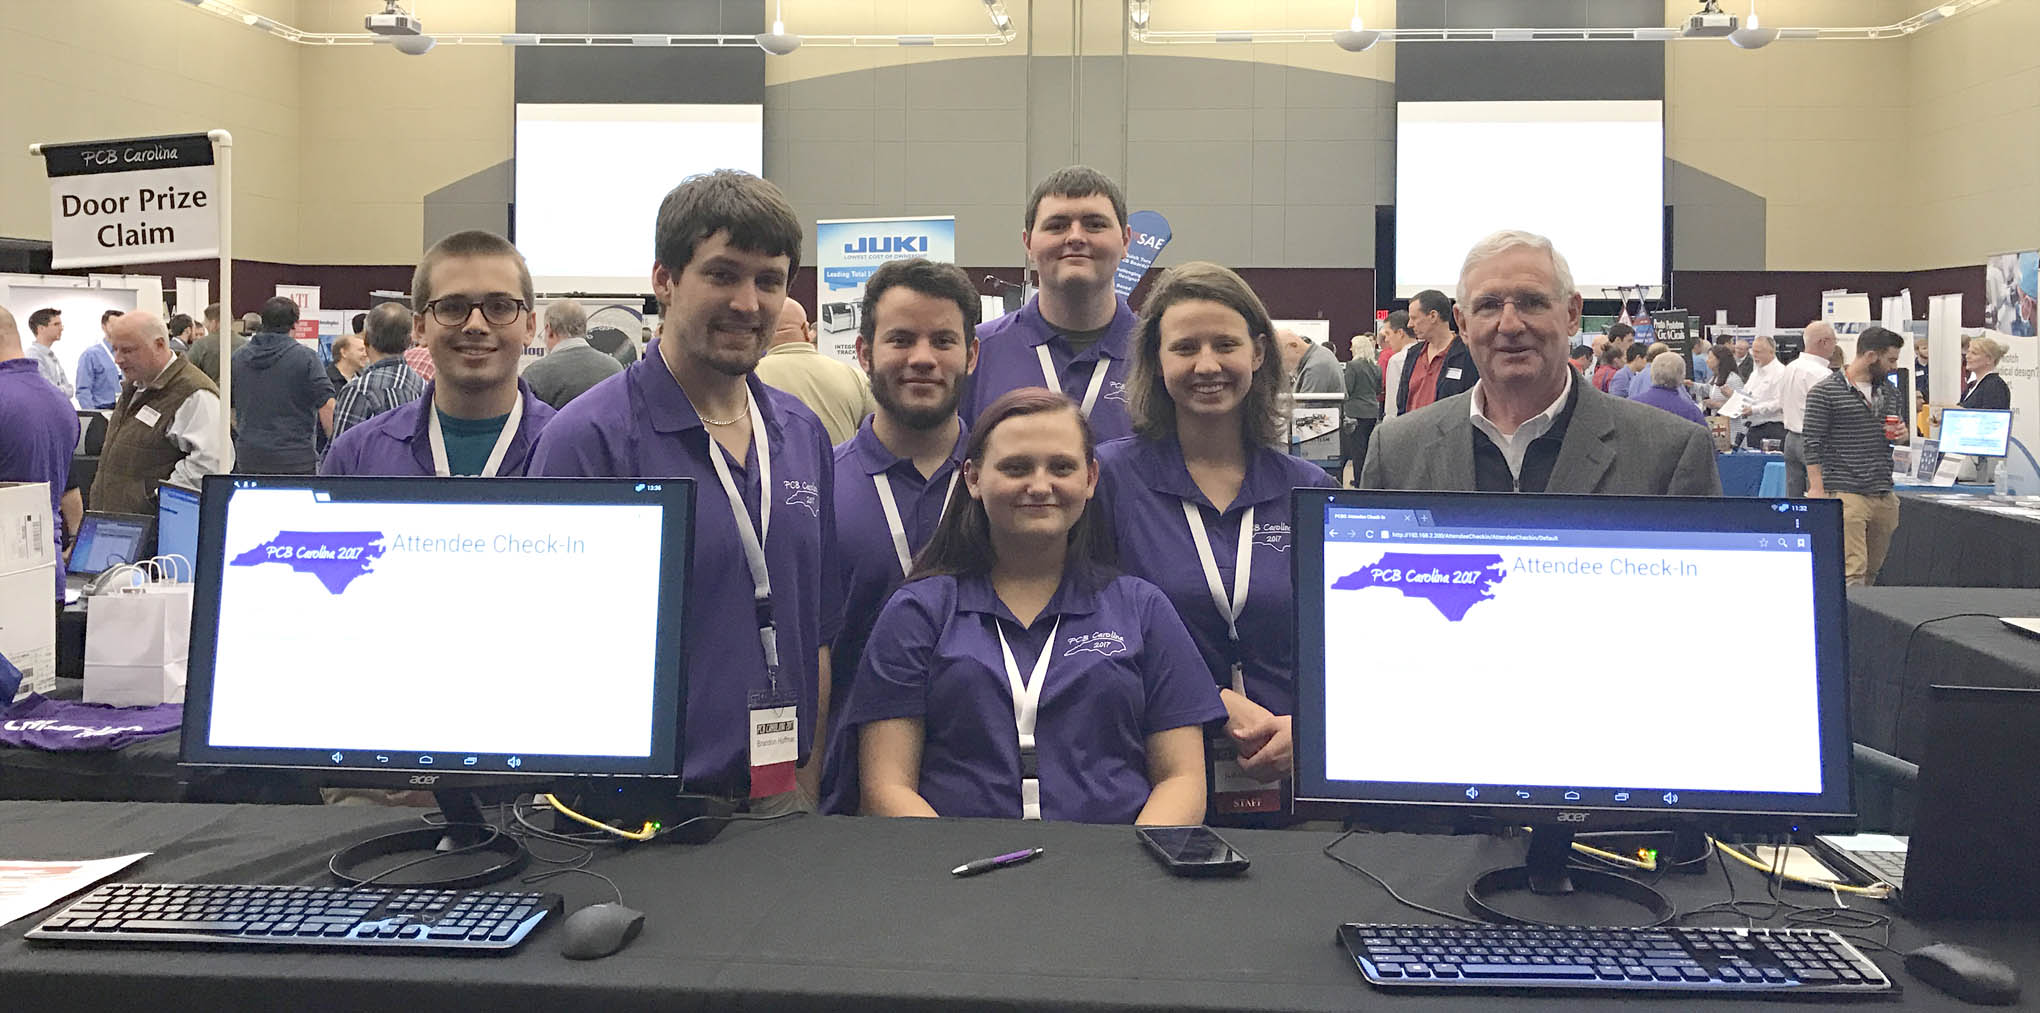 Click to enlarge,  Among the Central Carolina Community College Laser and Photonics Technology program attendees at the PCB Carolina 2017 Electronics Trade Show and Technical Conference were, left to right: Jamie Turner, Brandon Huffman, Cameron Wiedholz, Brittany Cheek, Ian Washburn, Isabelle Karis, and Gary Beasley (Lead Instructor of the CCCC Laser and Photonics Technology program).